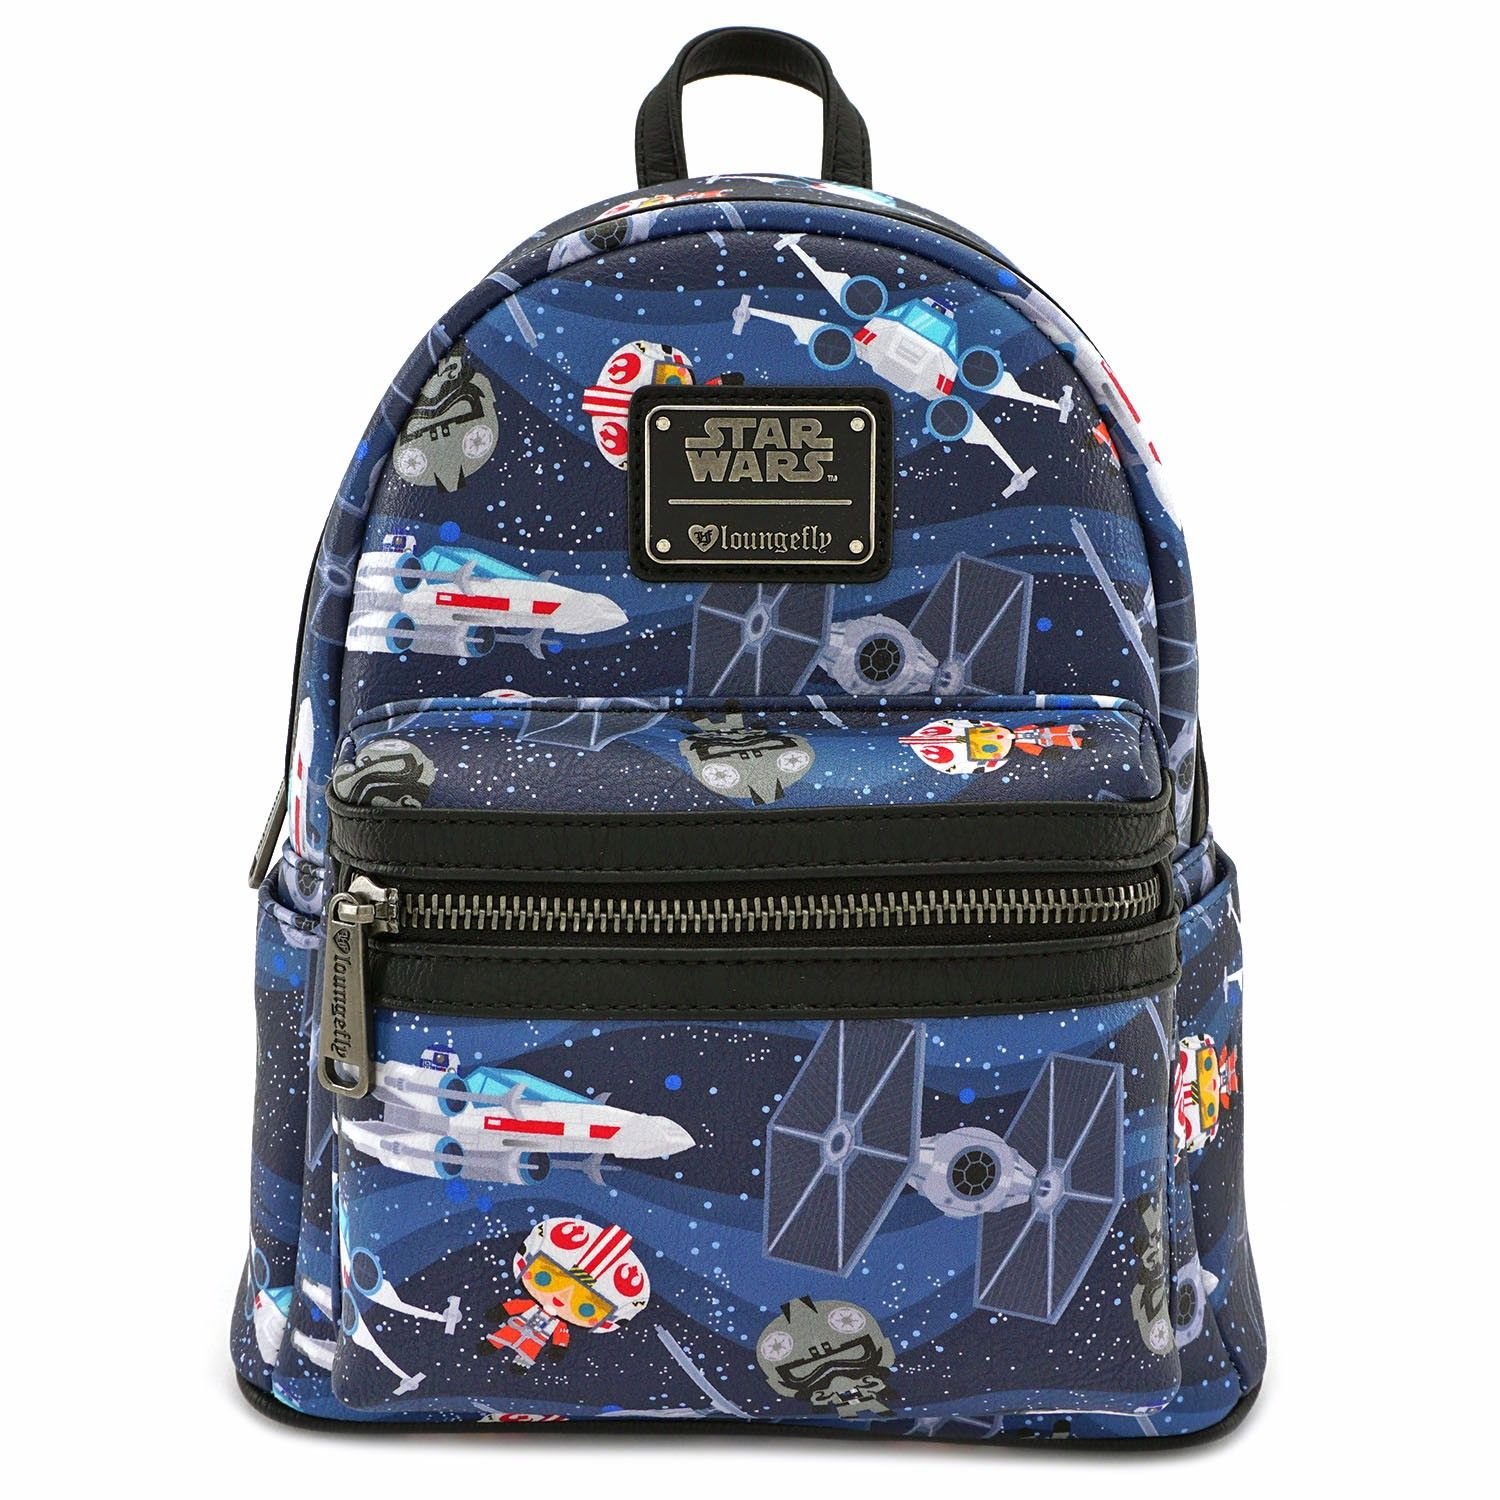 42b97a21632 Loungefly x Star Wars Chibi Ships Print Mini Backpack - View All - Whats New